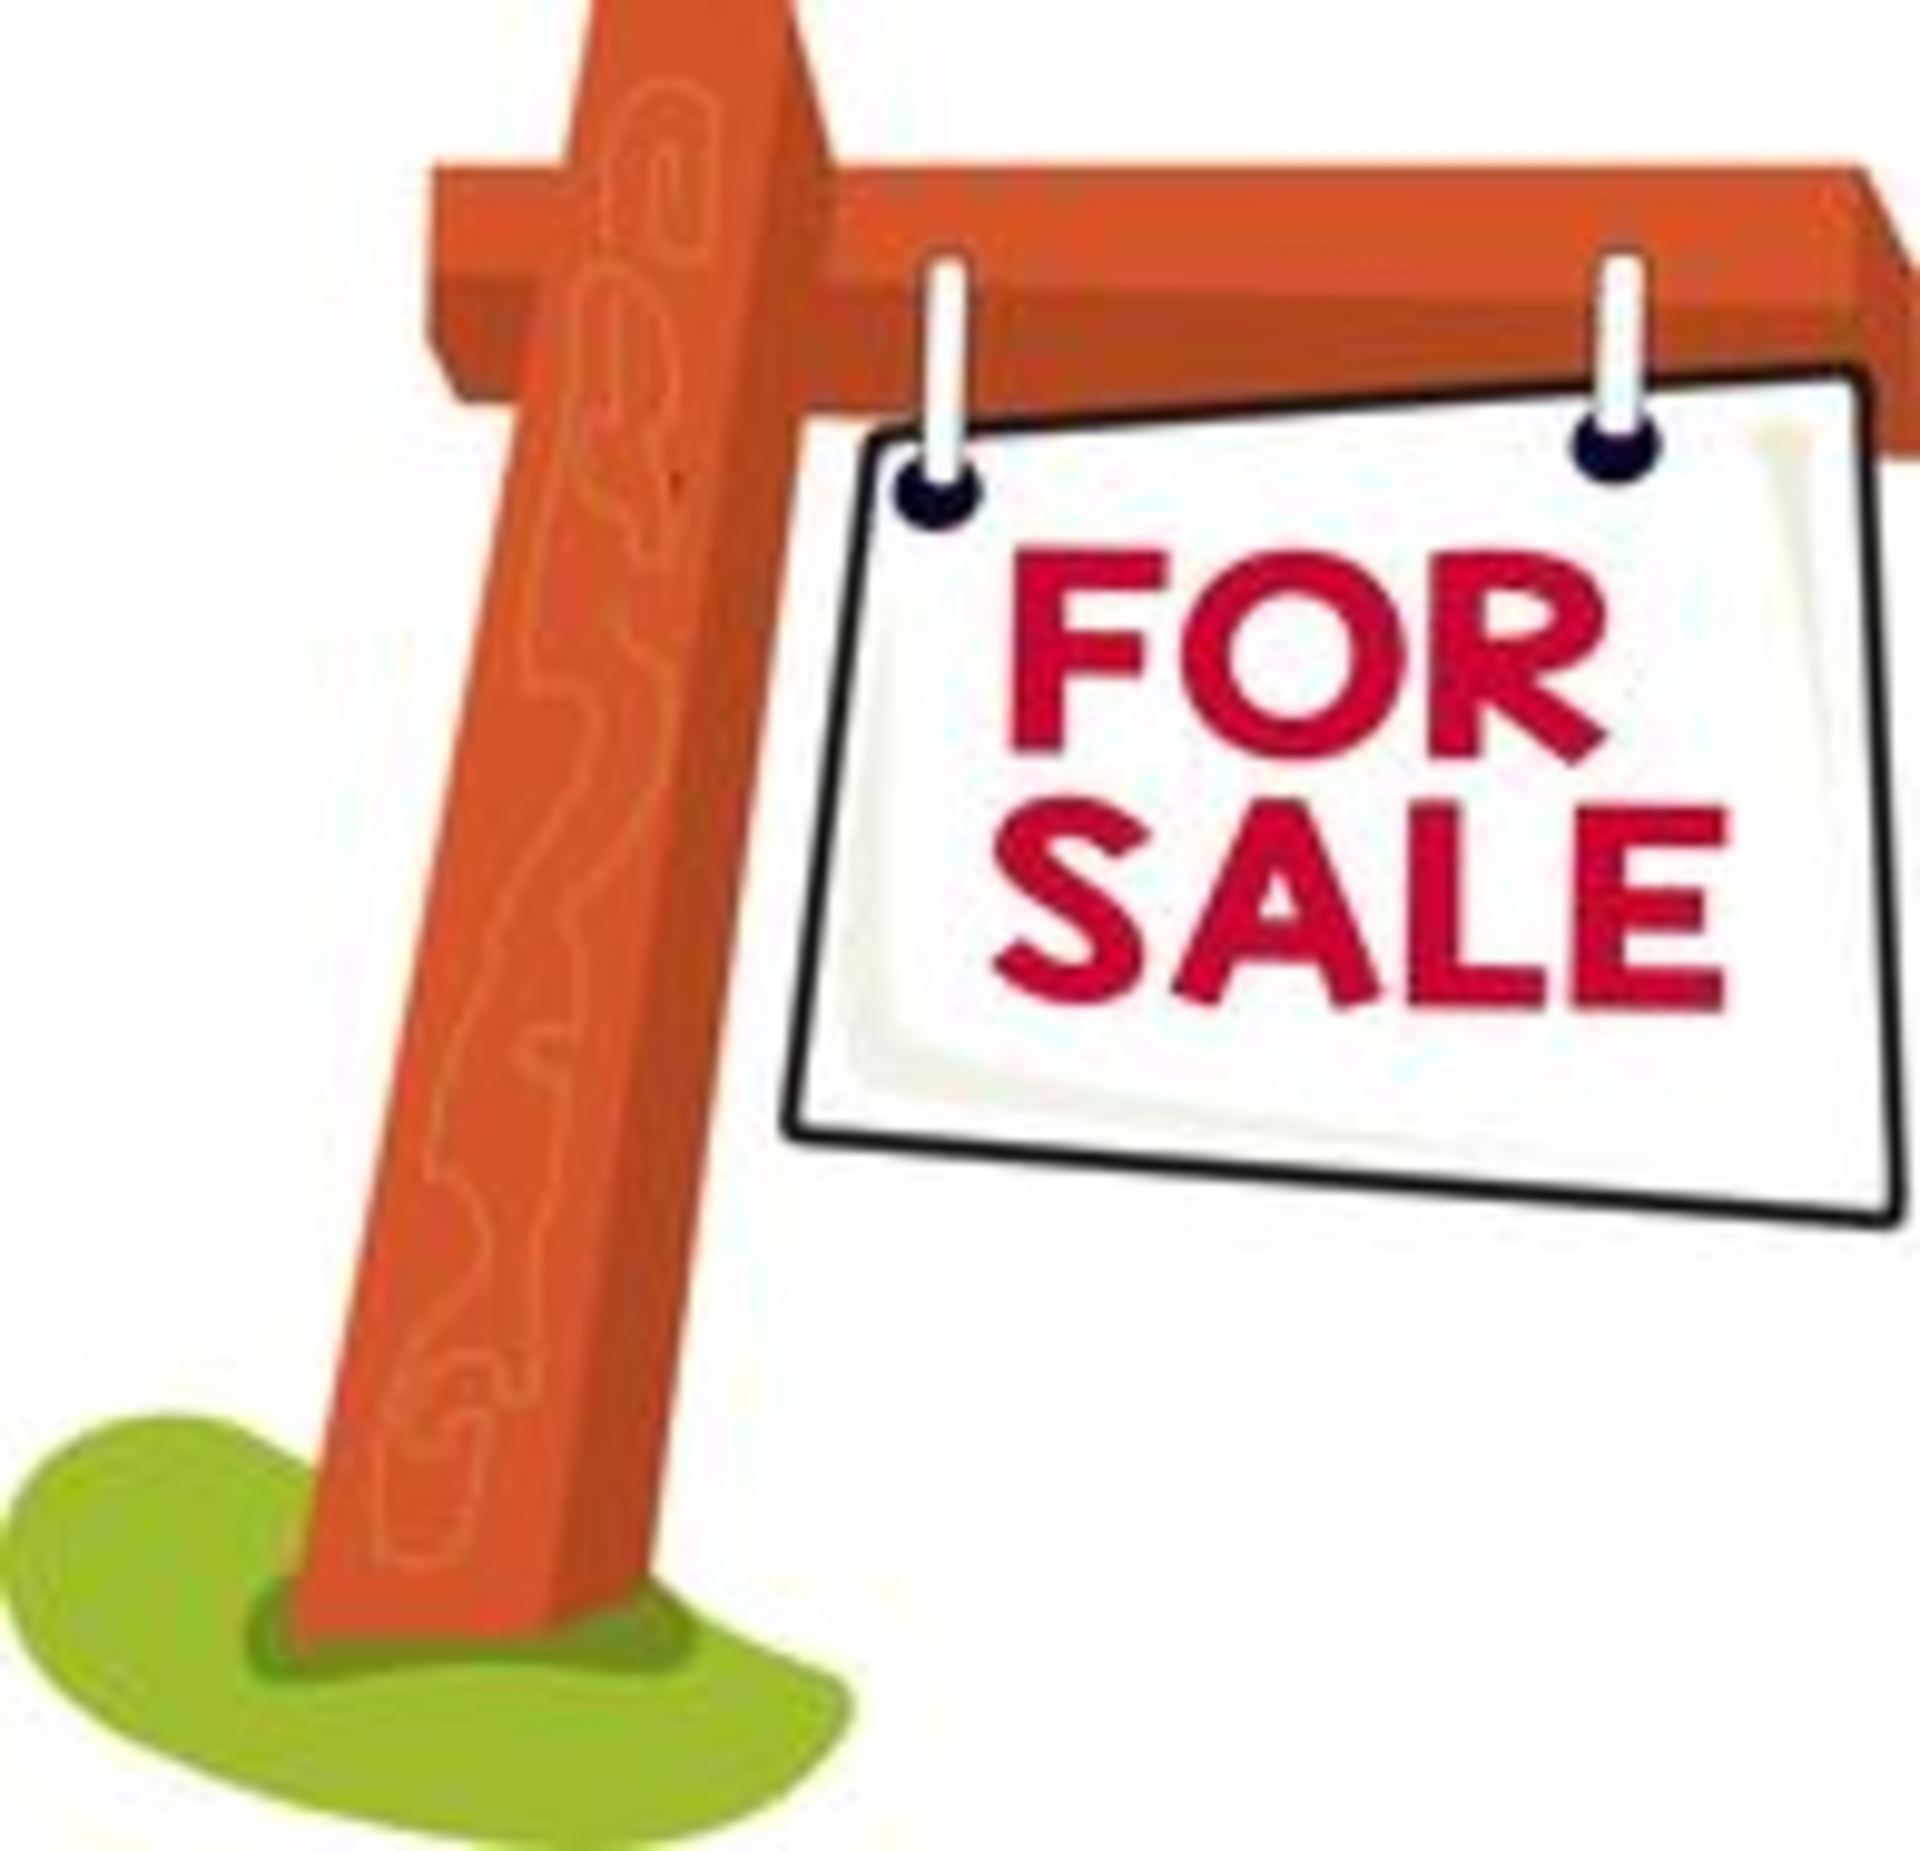 37af3a4b93c7f62eb80b2a4a141d200c_for-sale-sign-post-clipart-clip-art-for-sale-sign_195-188 at 14678 St. Andrews Drive, Bolivar Heights, North Surrey